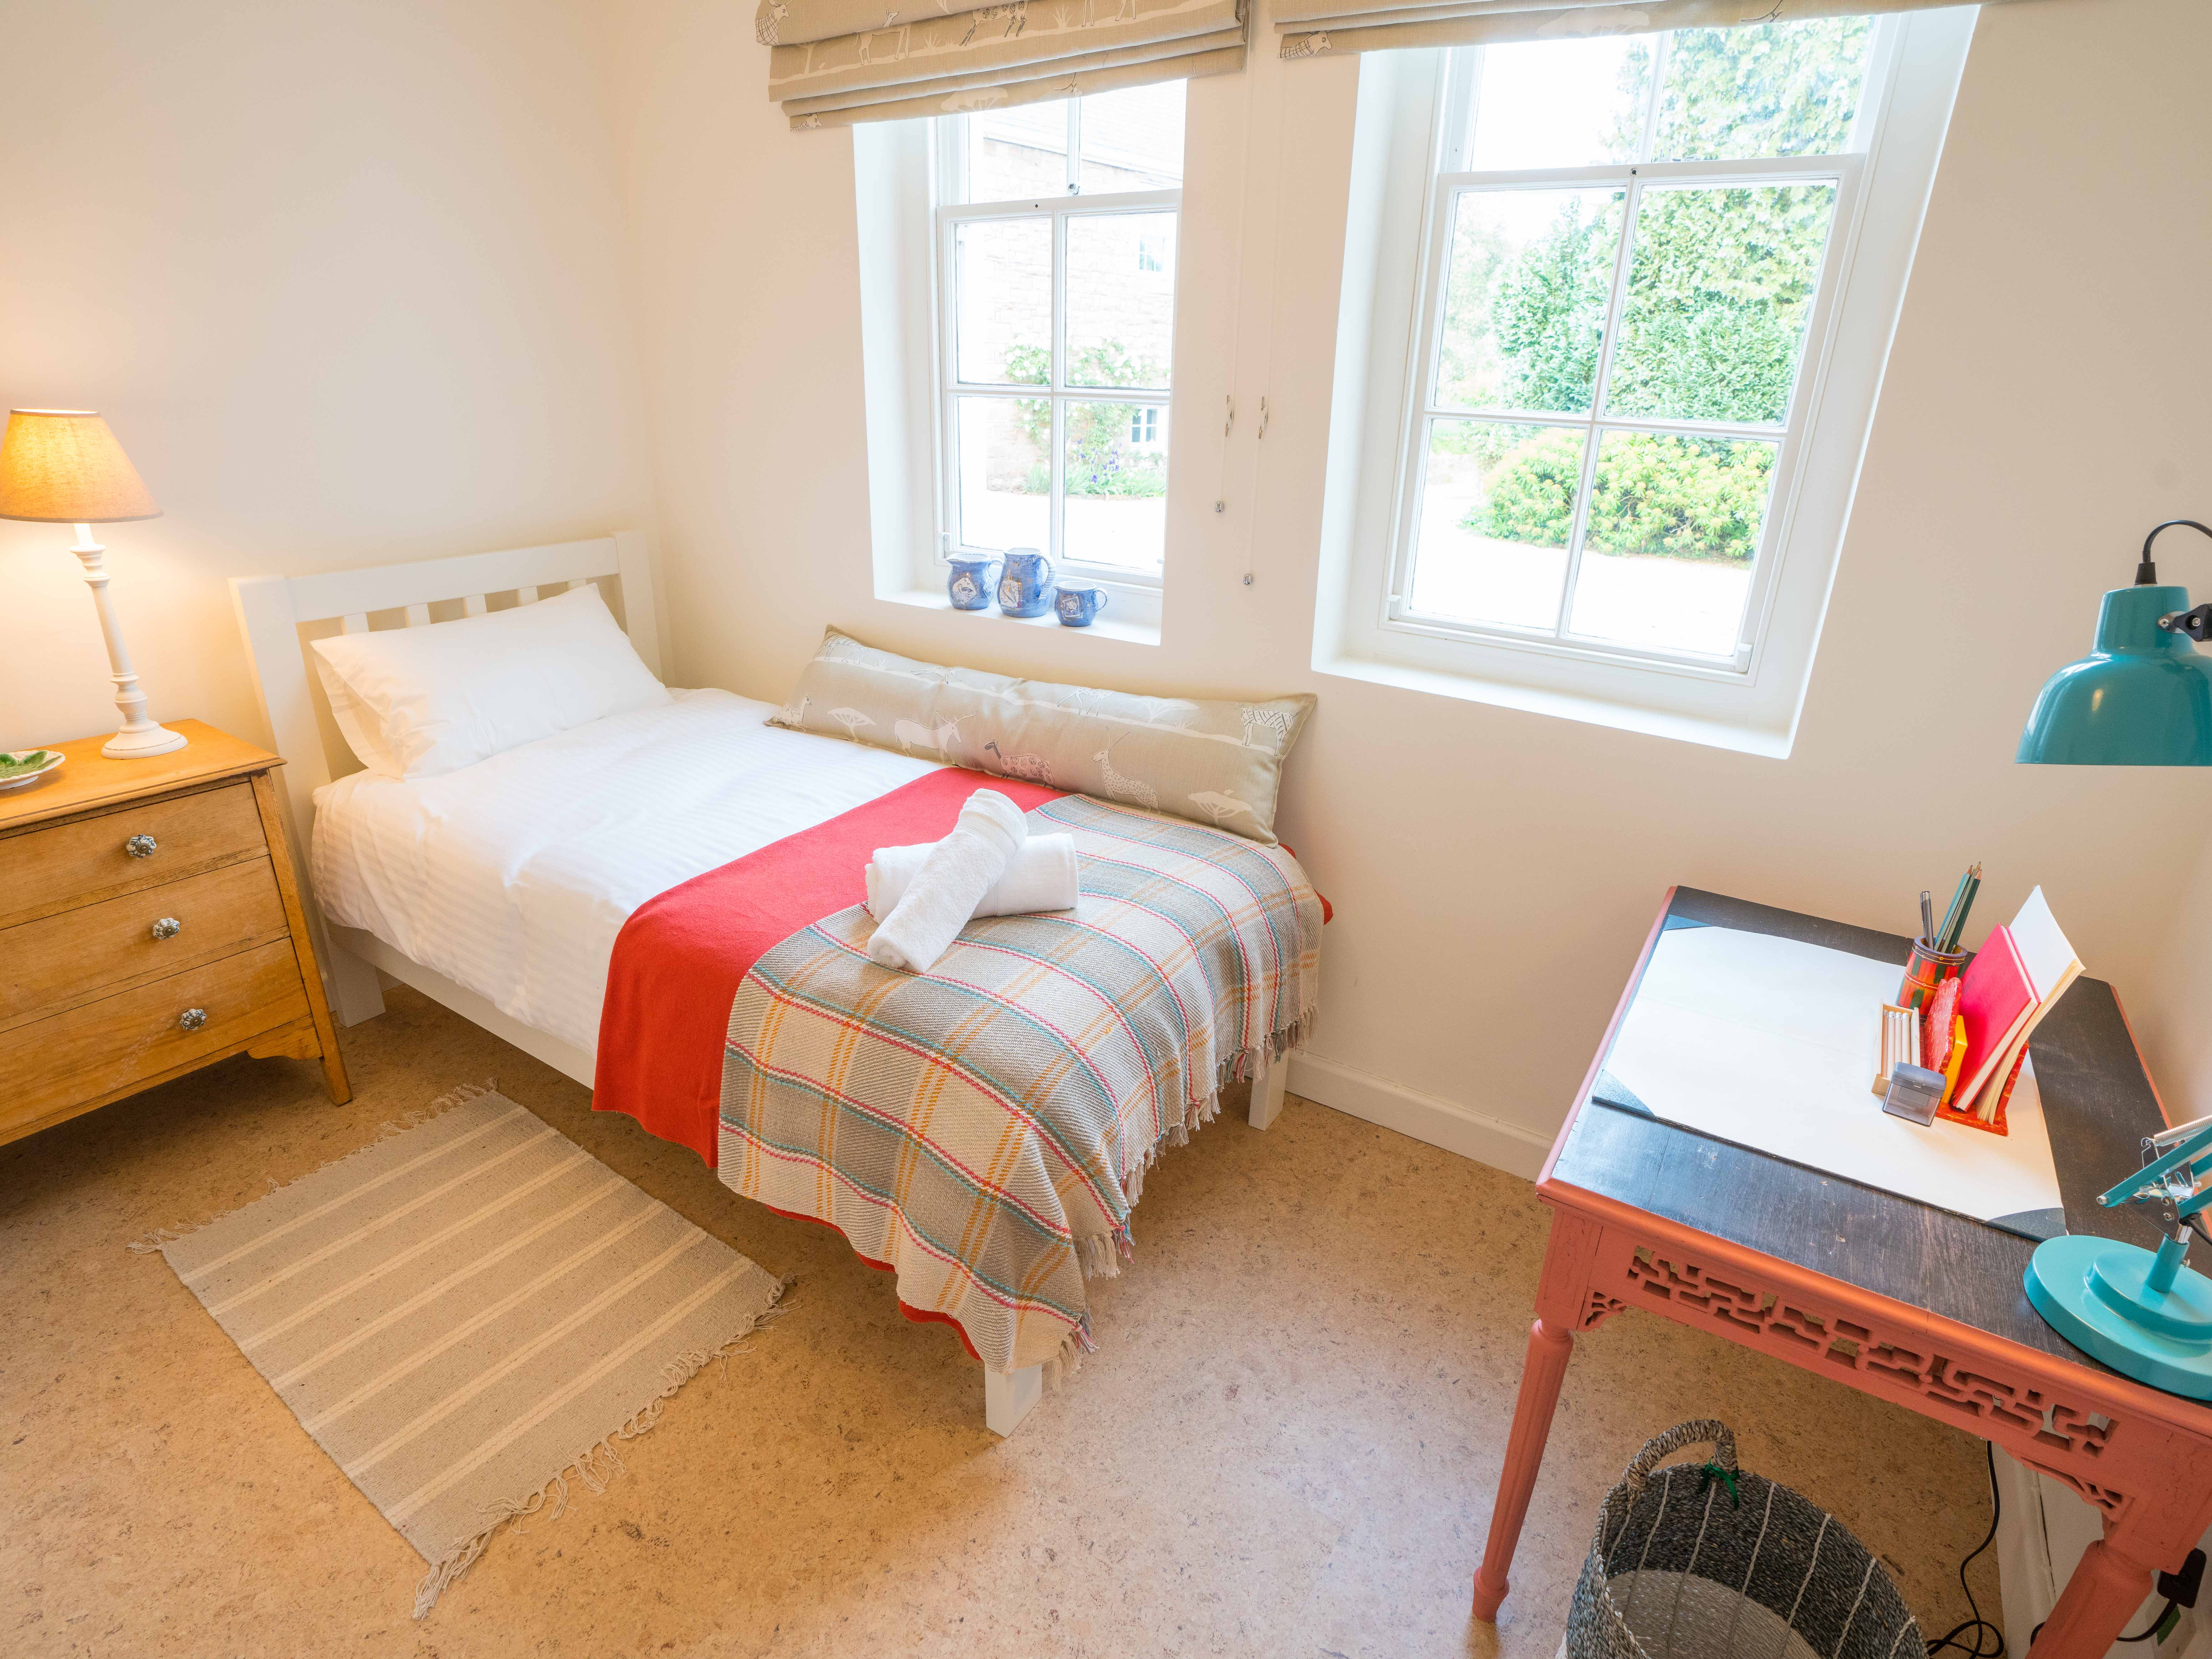 Ground floor single bedroom - this room would share the bathroom facilities upstairs